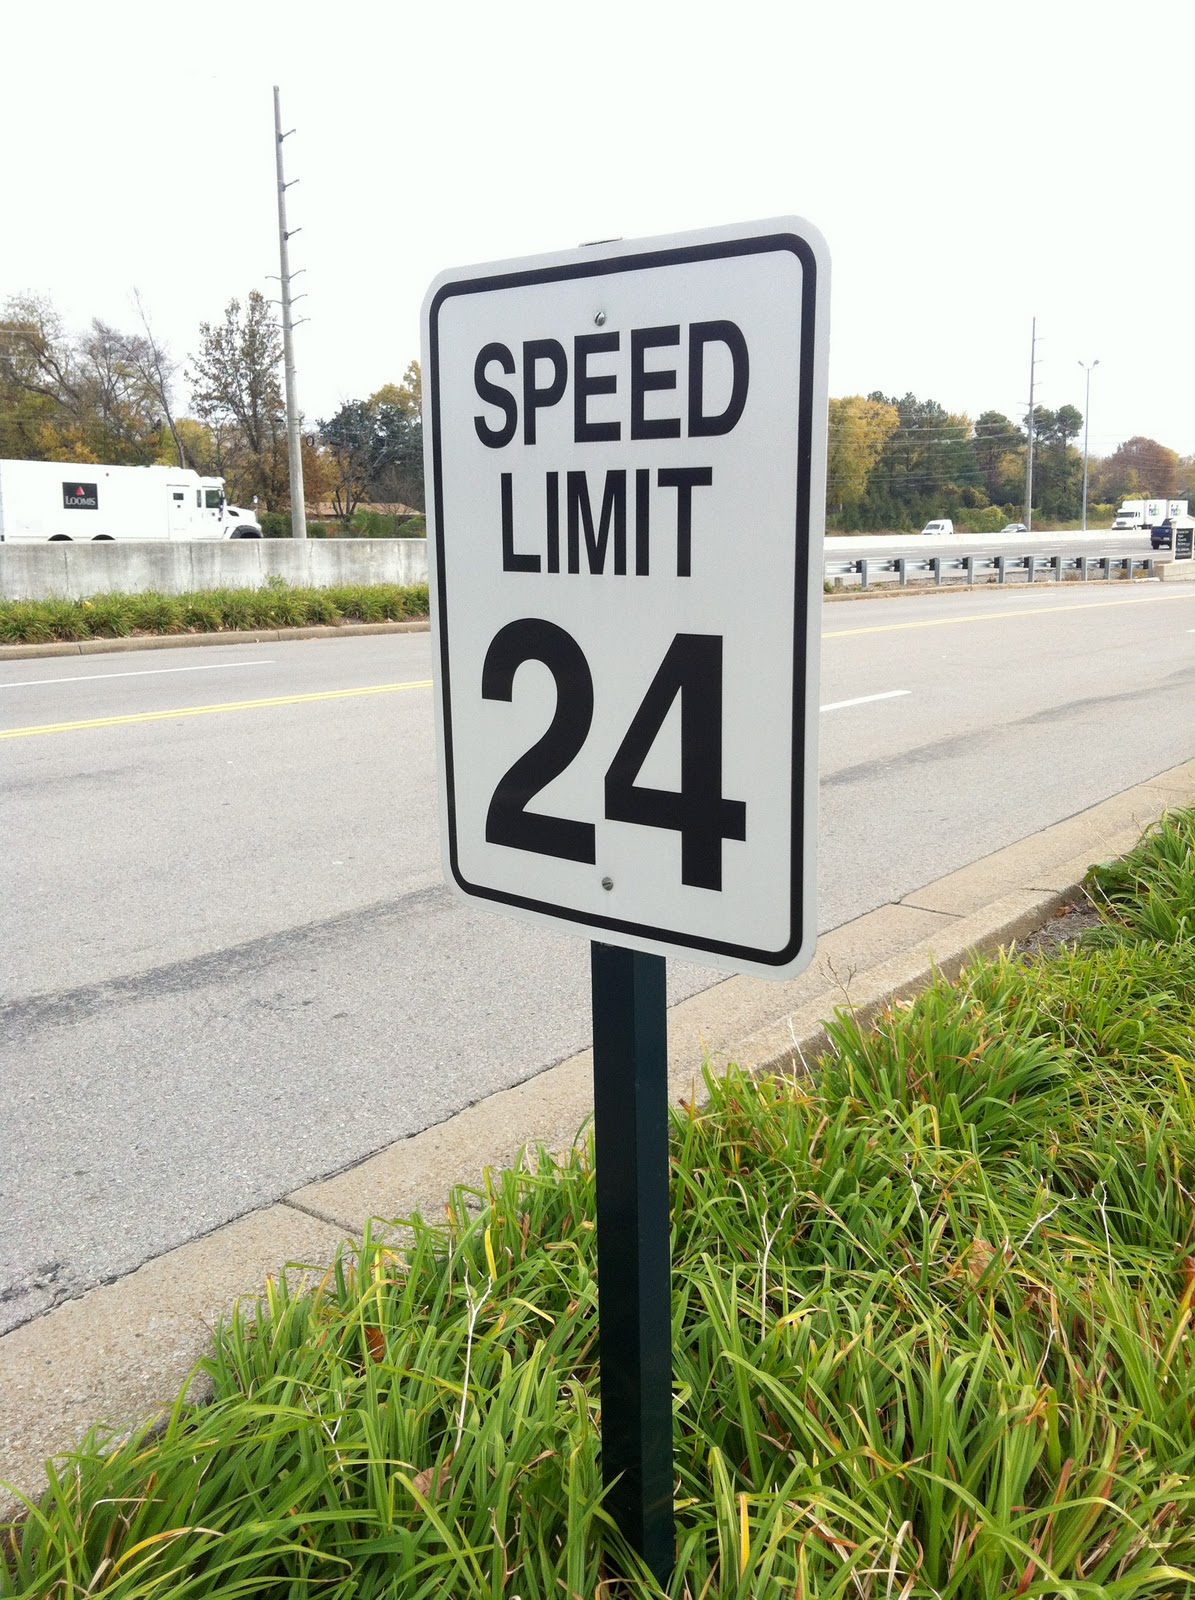 Have You Ever Seen A 24 Speed Limit Sign We Thought It Was Strange